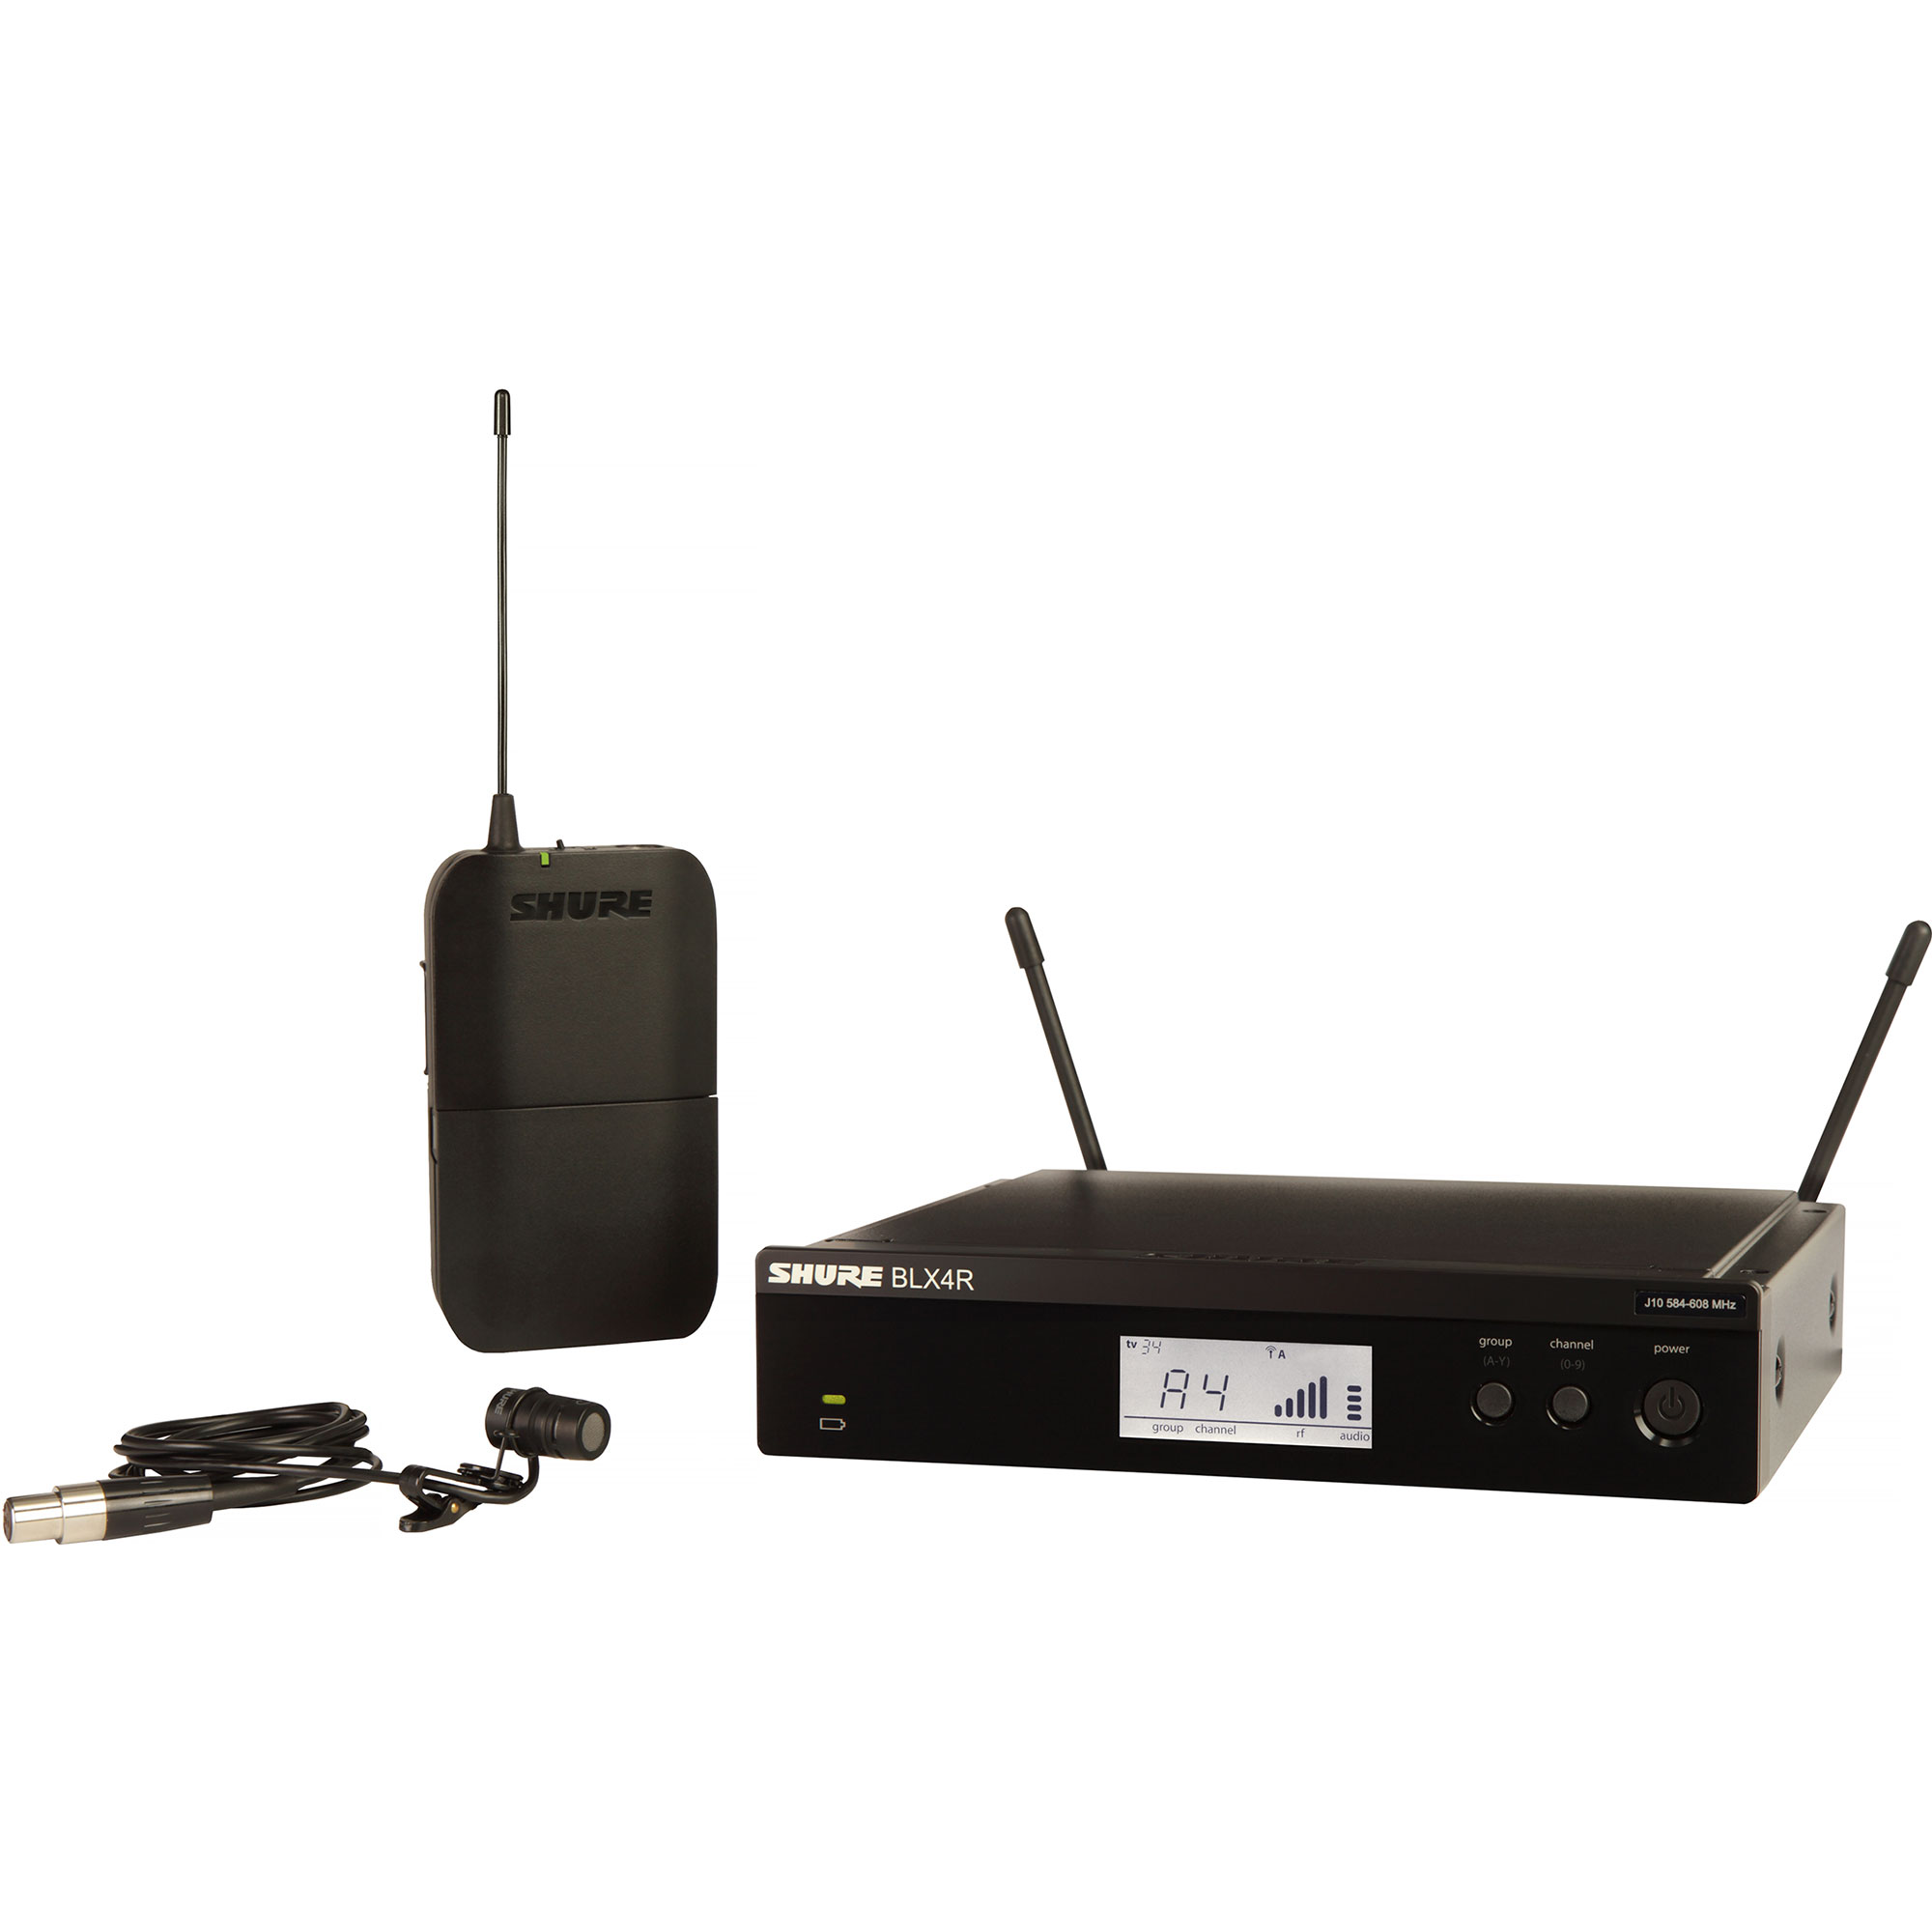 Shure BLX Wireless System with WL185 Lavalier Microphone, BLX1 Bodypack Transmitter, and BLX4R Receiver